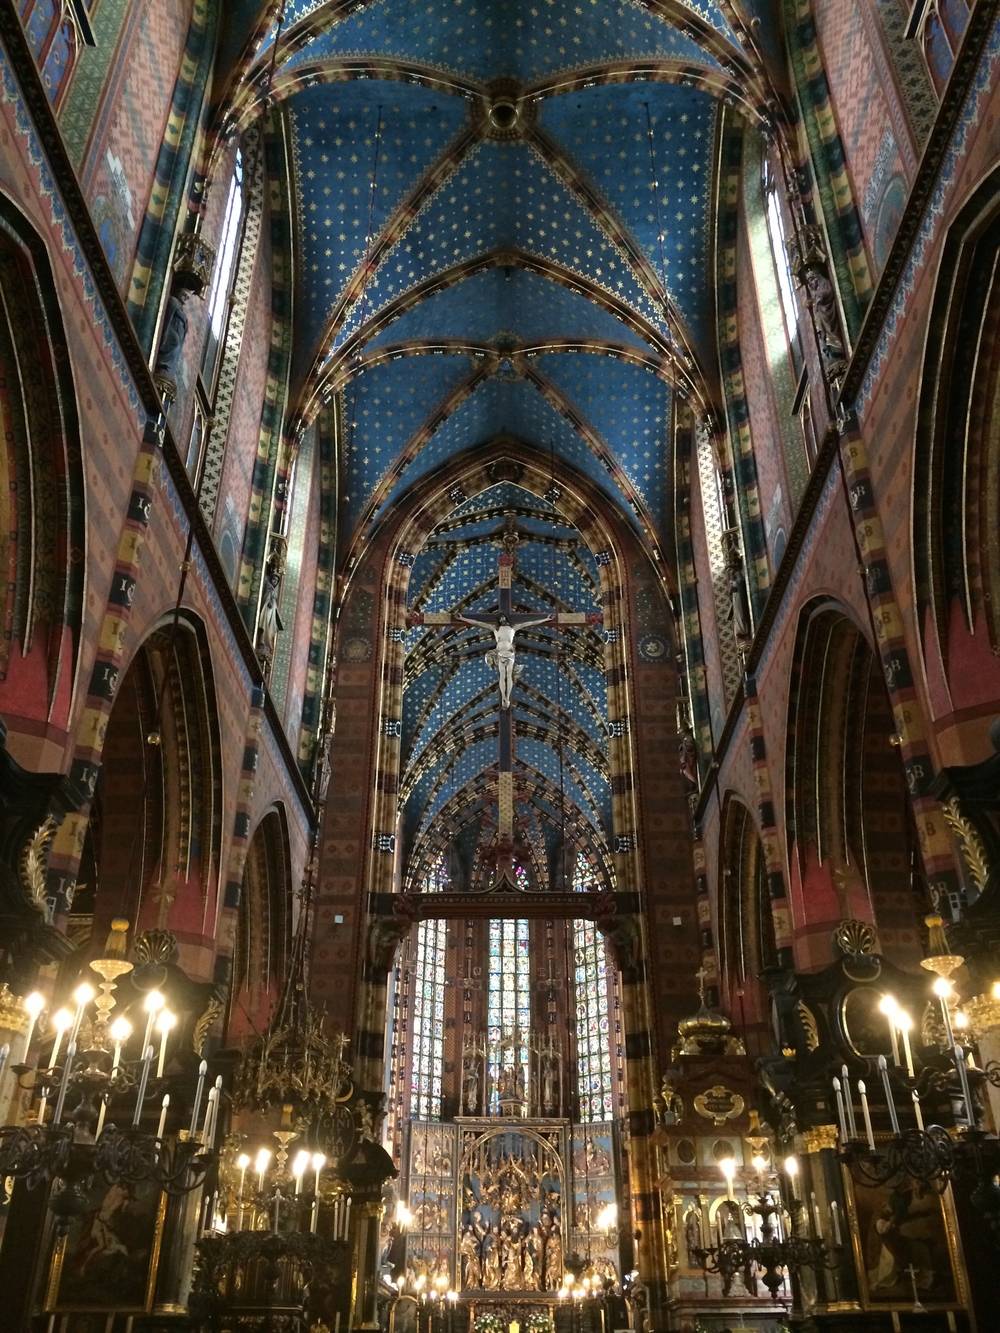 Interior of the St. Mary's Basilica... just beautiful!